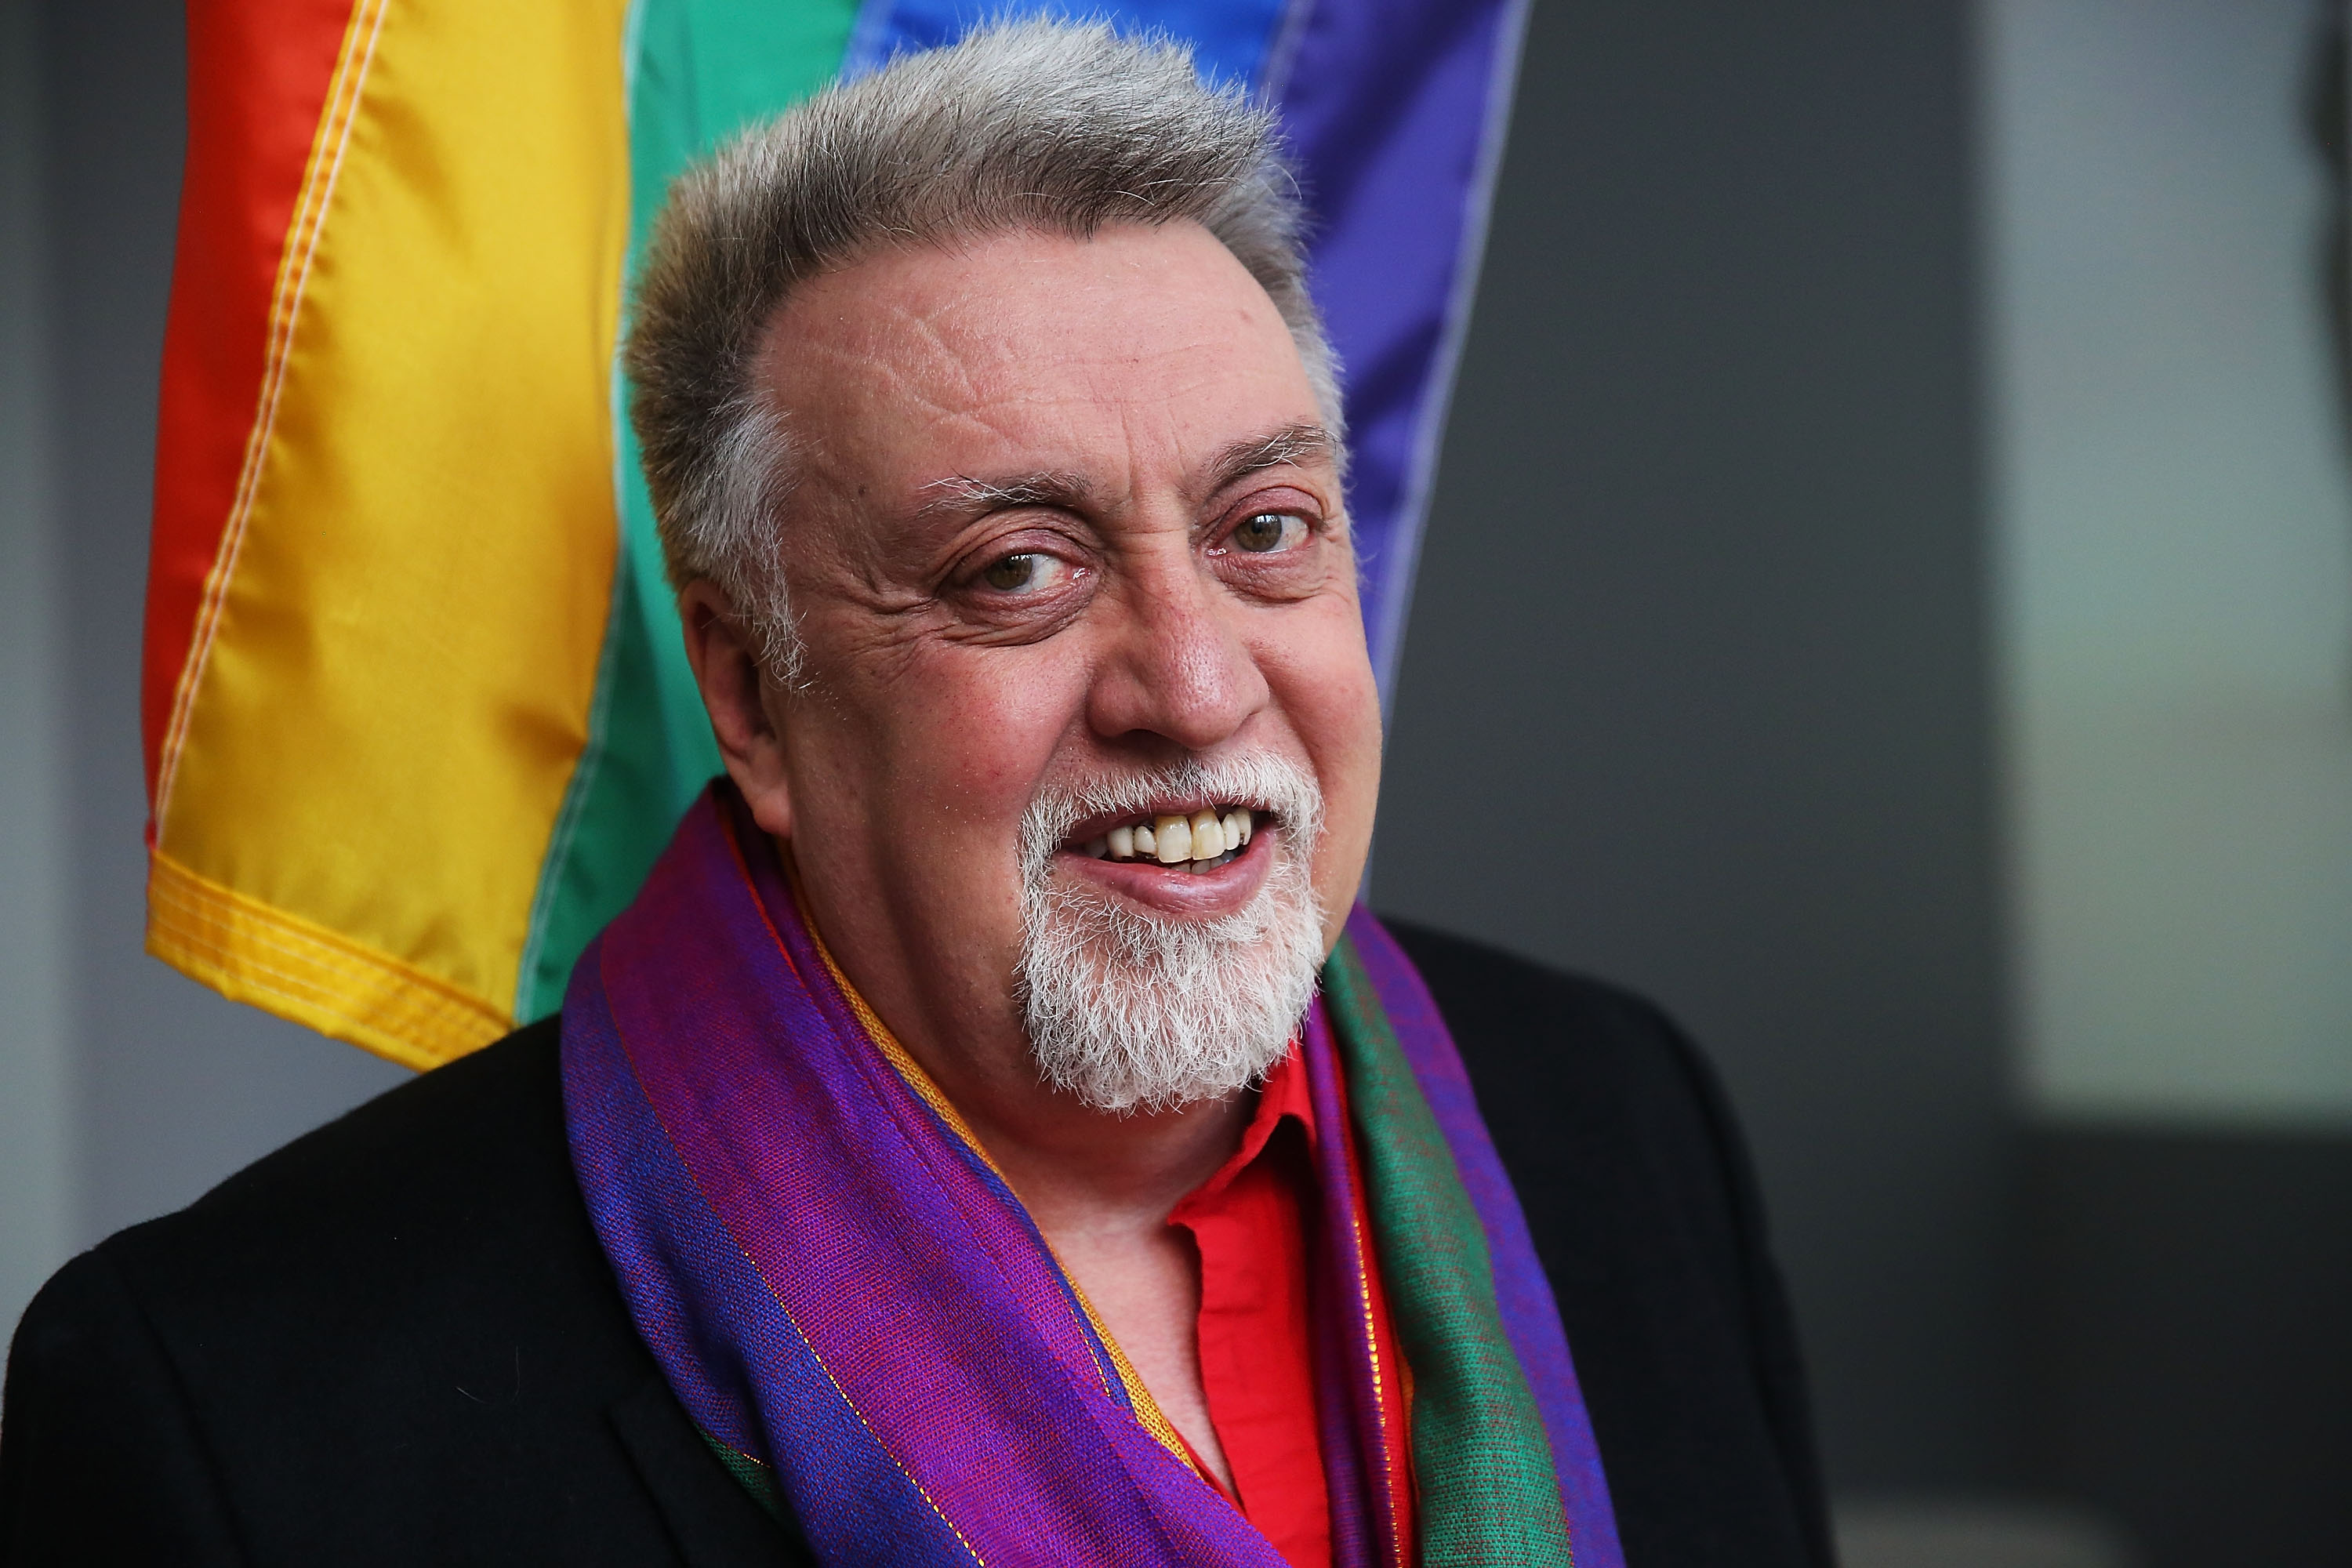 NEW YORK, NY - JANUARY 07:  Rainbow Flag Creator Gilbert Baker poses at the Museum of Modern Art (MoMA) on January 7, 2016 in New York City. MoMa announced in June 2015 its acquisition of the iconic Rainbow Flag into the design collection. Baker, an openly gay artist and civil rights activist, designed the Rainbow Flag in 1978. The flag has since become a prominent symbol to the gay community around the world.